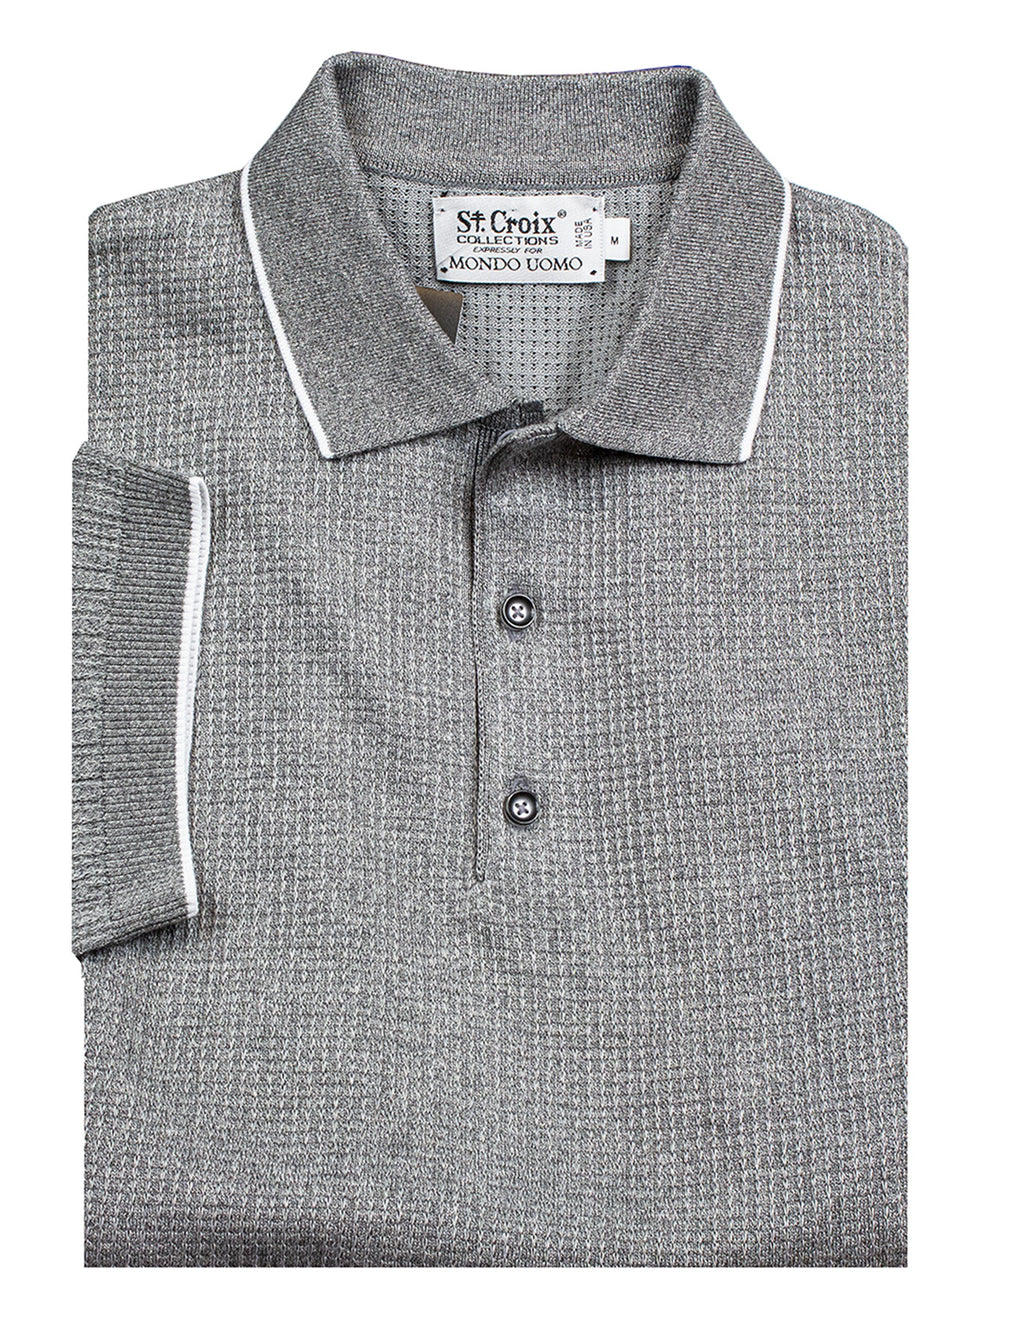 St Croix Polo Knit Dove Grey Waffle